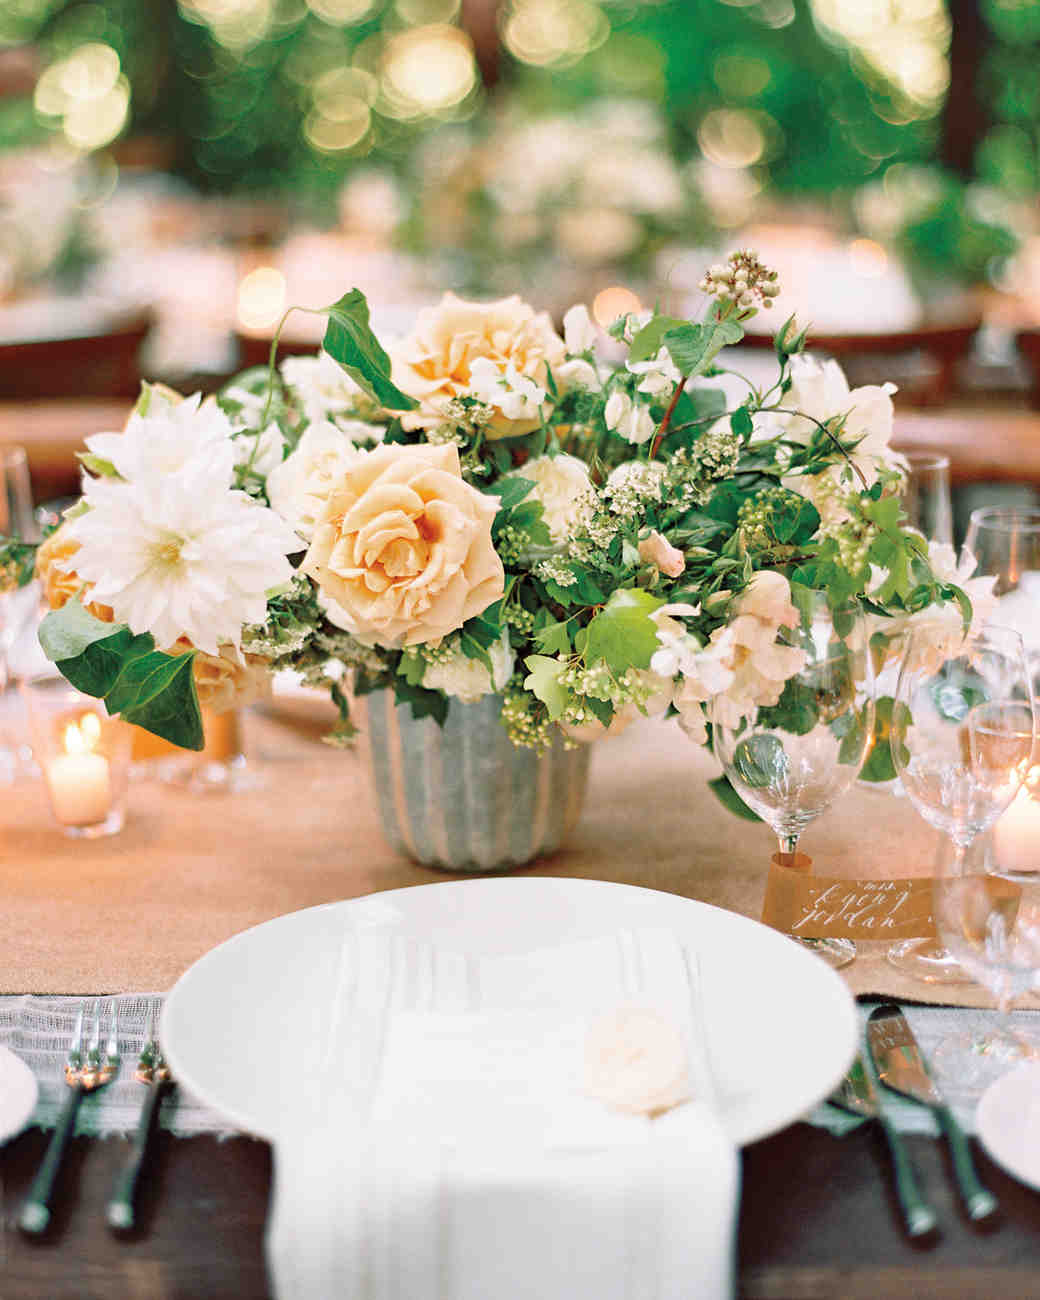 2019 year style- Trendy and Chic orange wedding party flowers